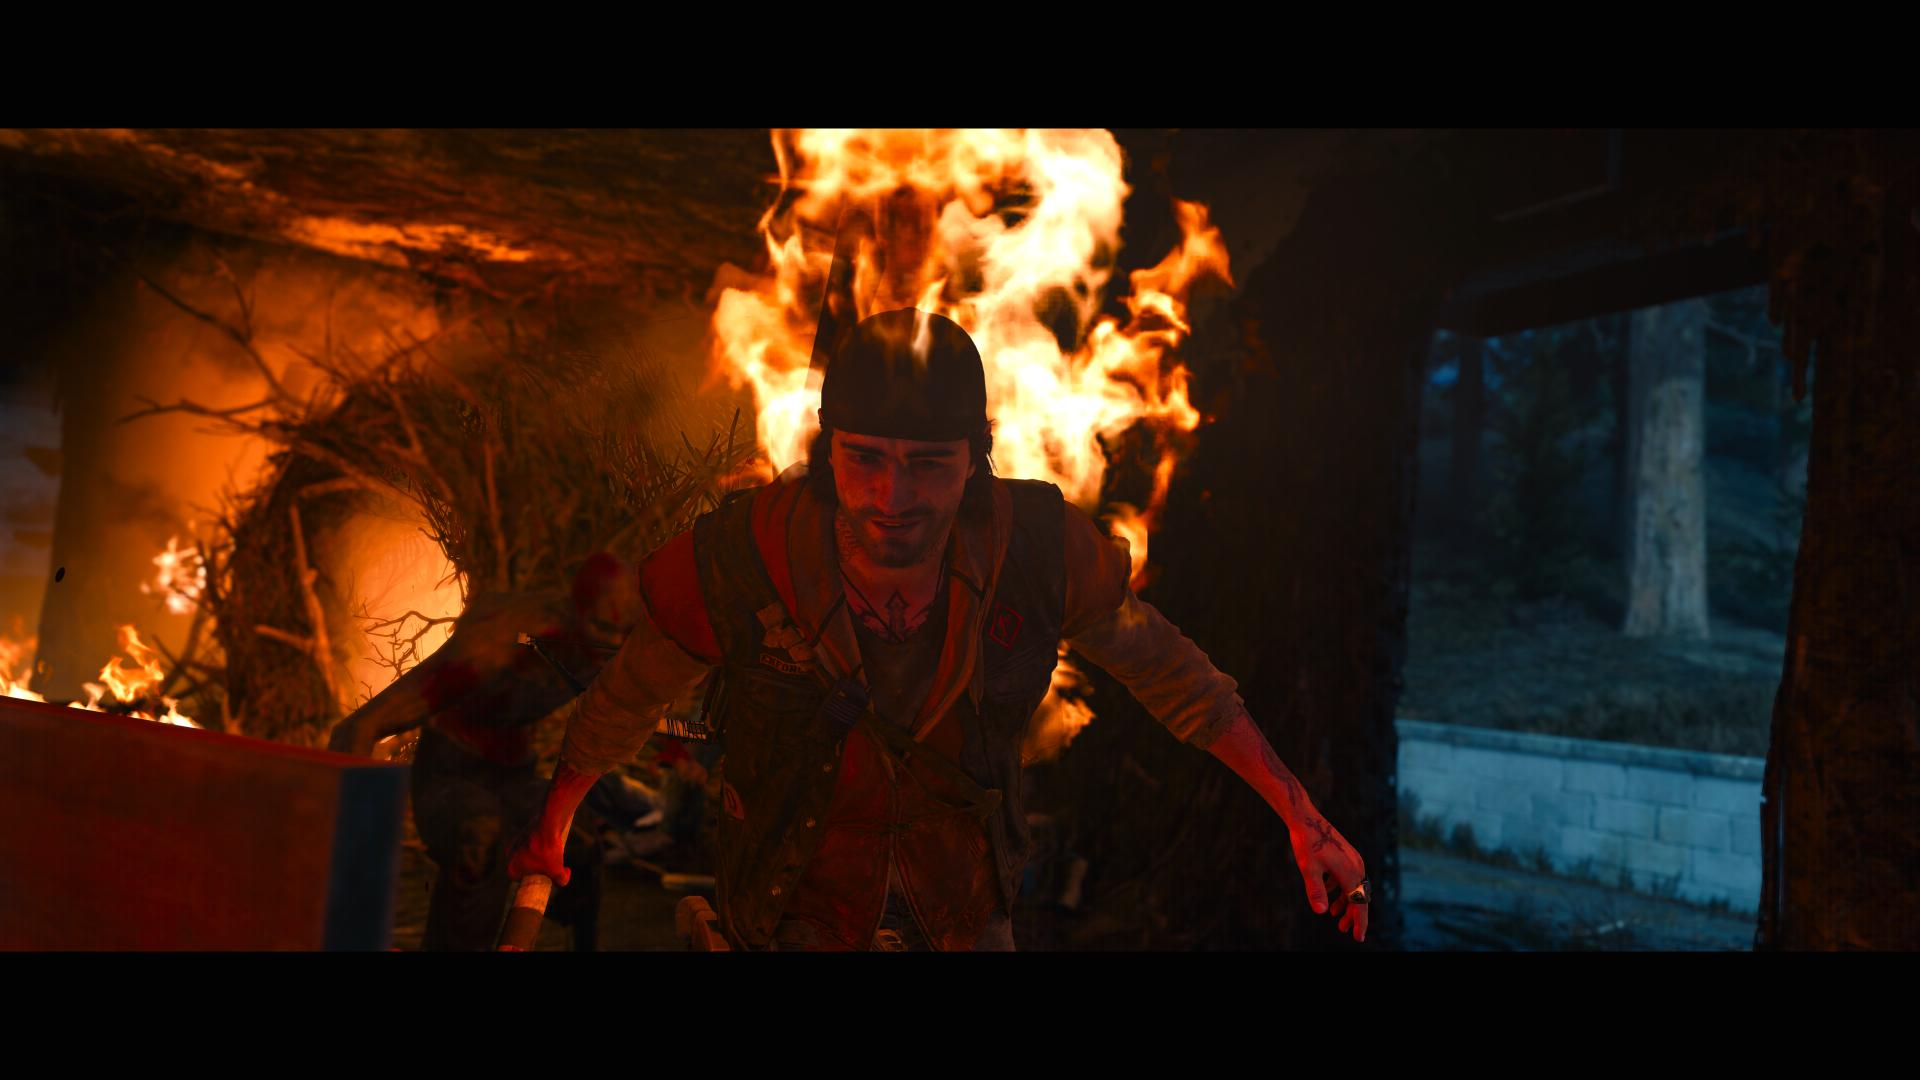 The lead character of Days Gone. On fire.